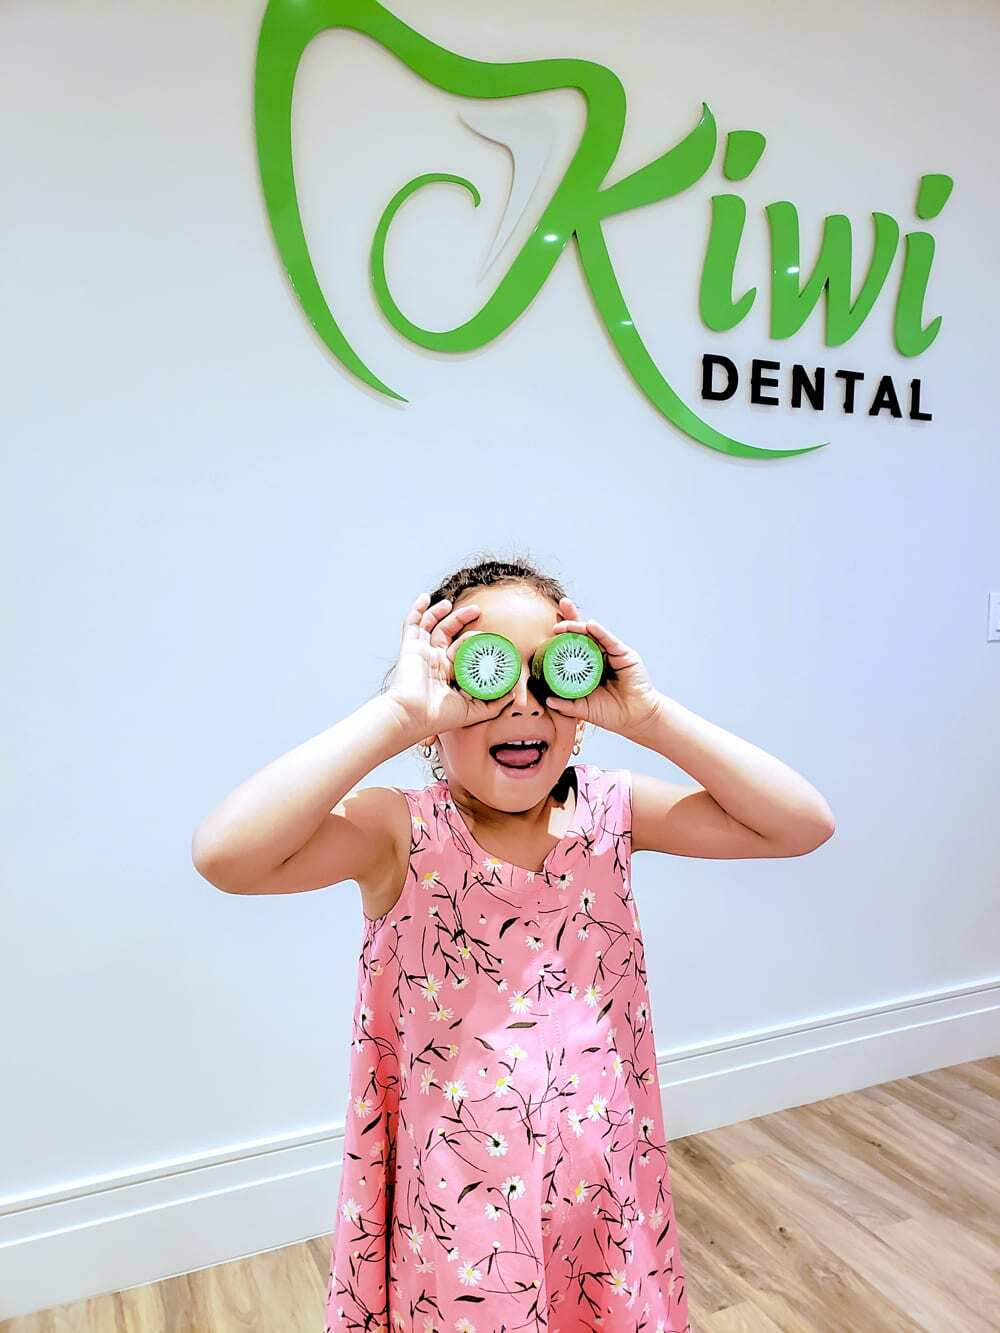 Kid having an awesome time at a dental office